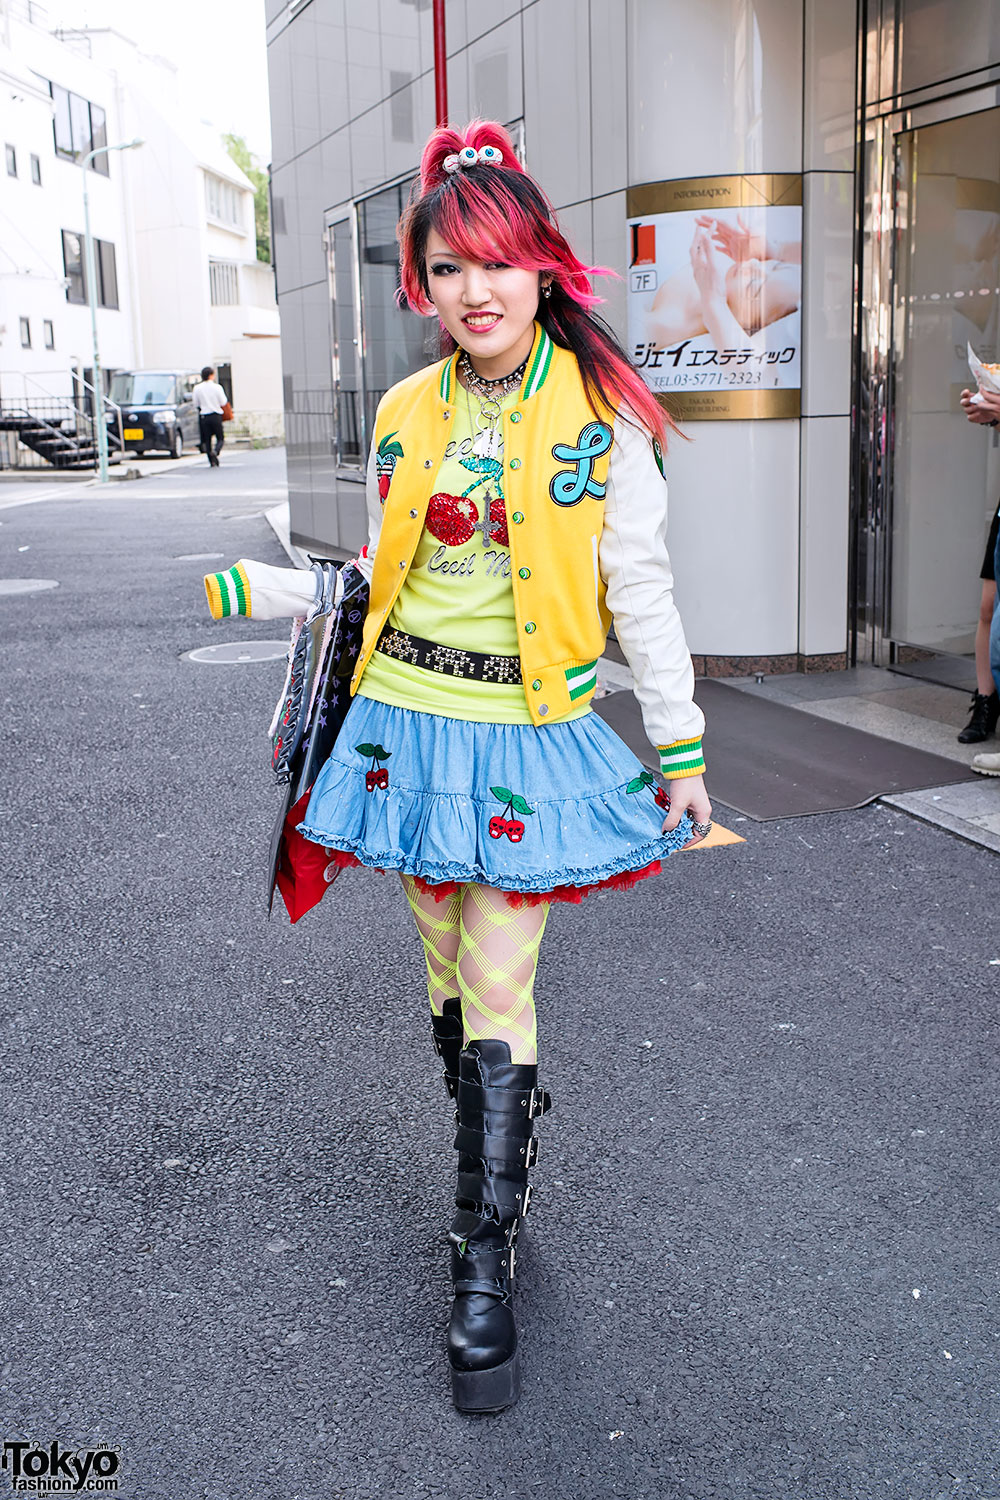 Lisa 39 S Pink Hair Cherry Skull Skirt Buckle Boots In Harajuku